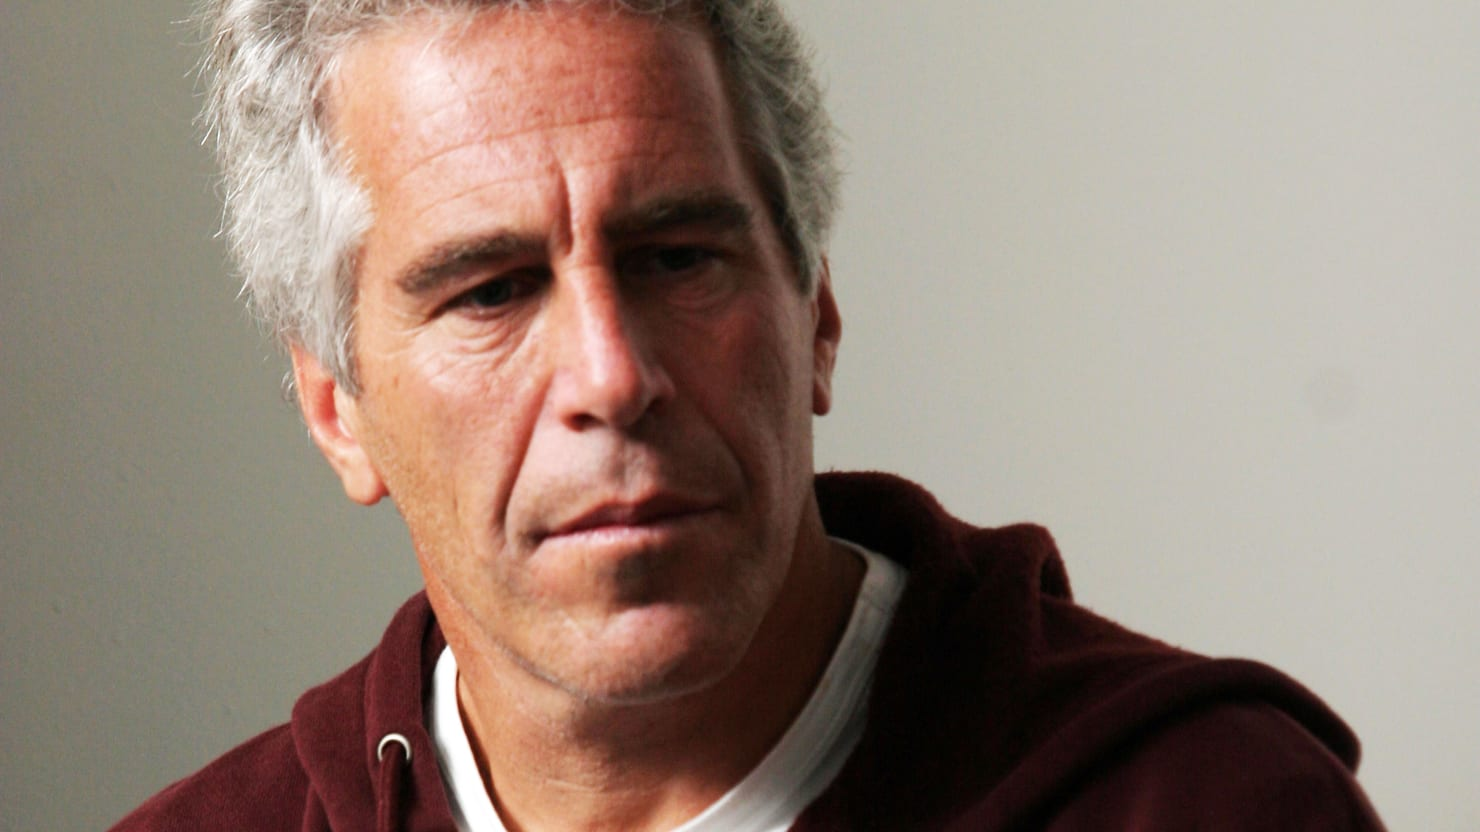 Current Status: Jeffrey Epstein Had 'Piles of Cash,' Diamonds, Saudi Passport in Safe